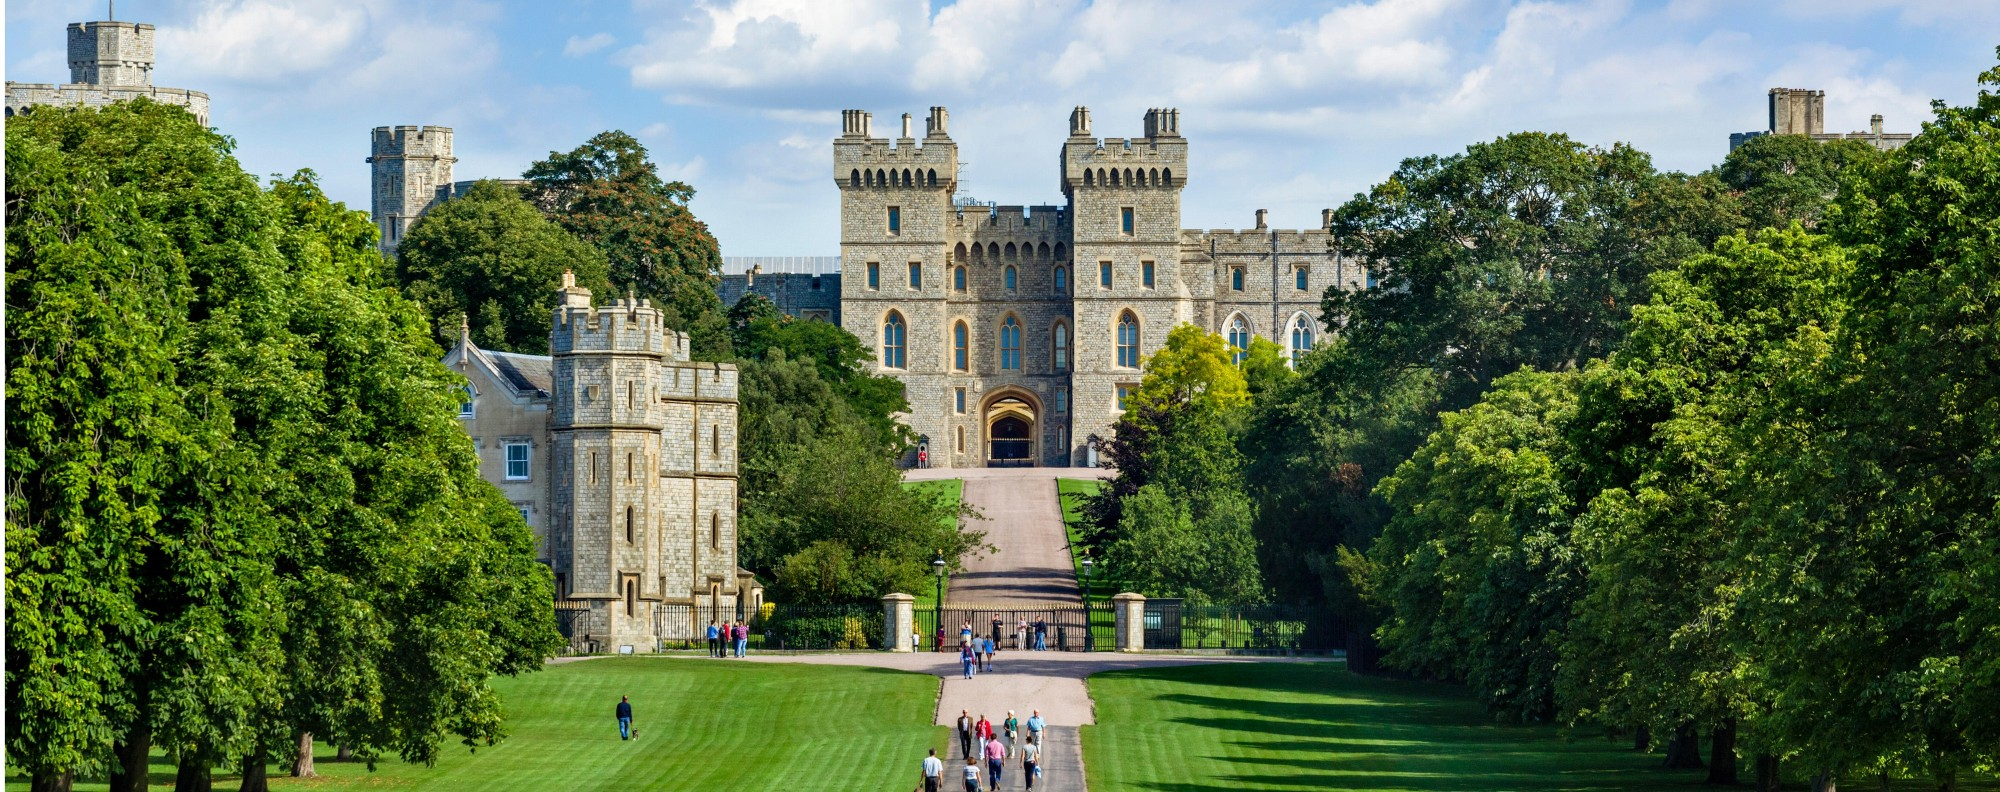 The Long Walk, with Windsor Castle in the distance, in Windsor Great Park. Picture: Alamy